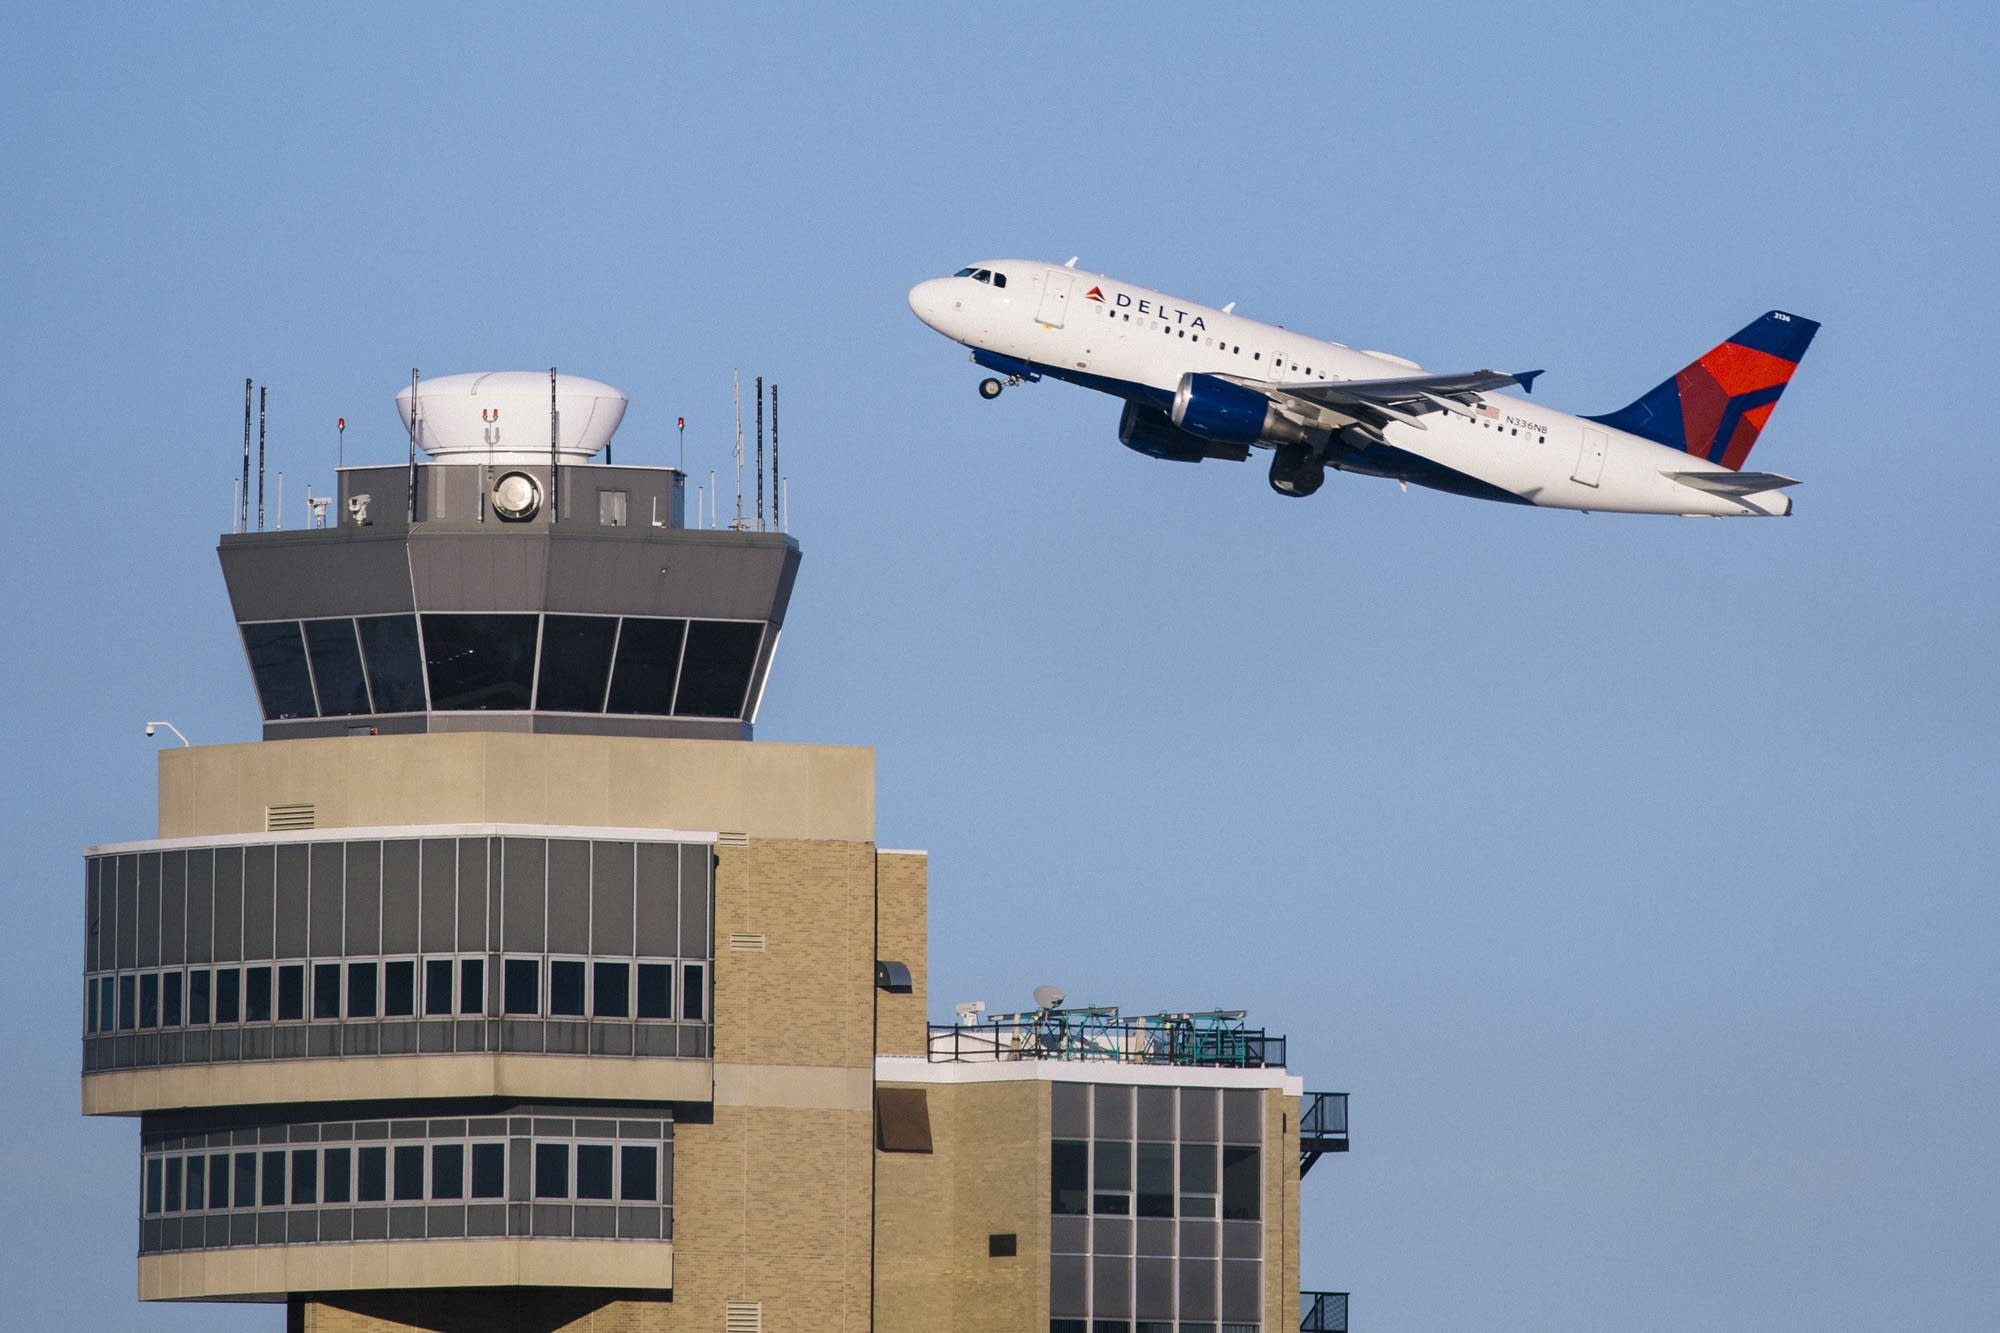 A Delta jet cruises past the air traffic control tower.